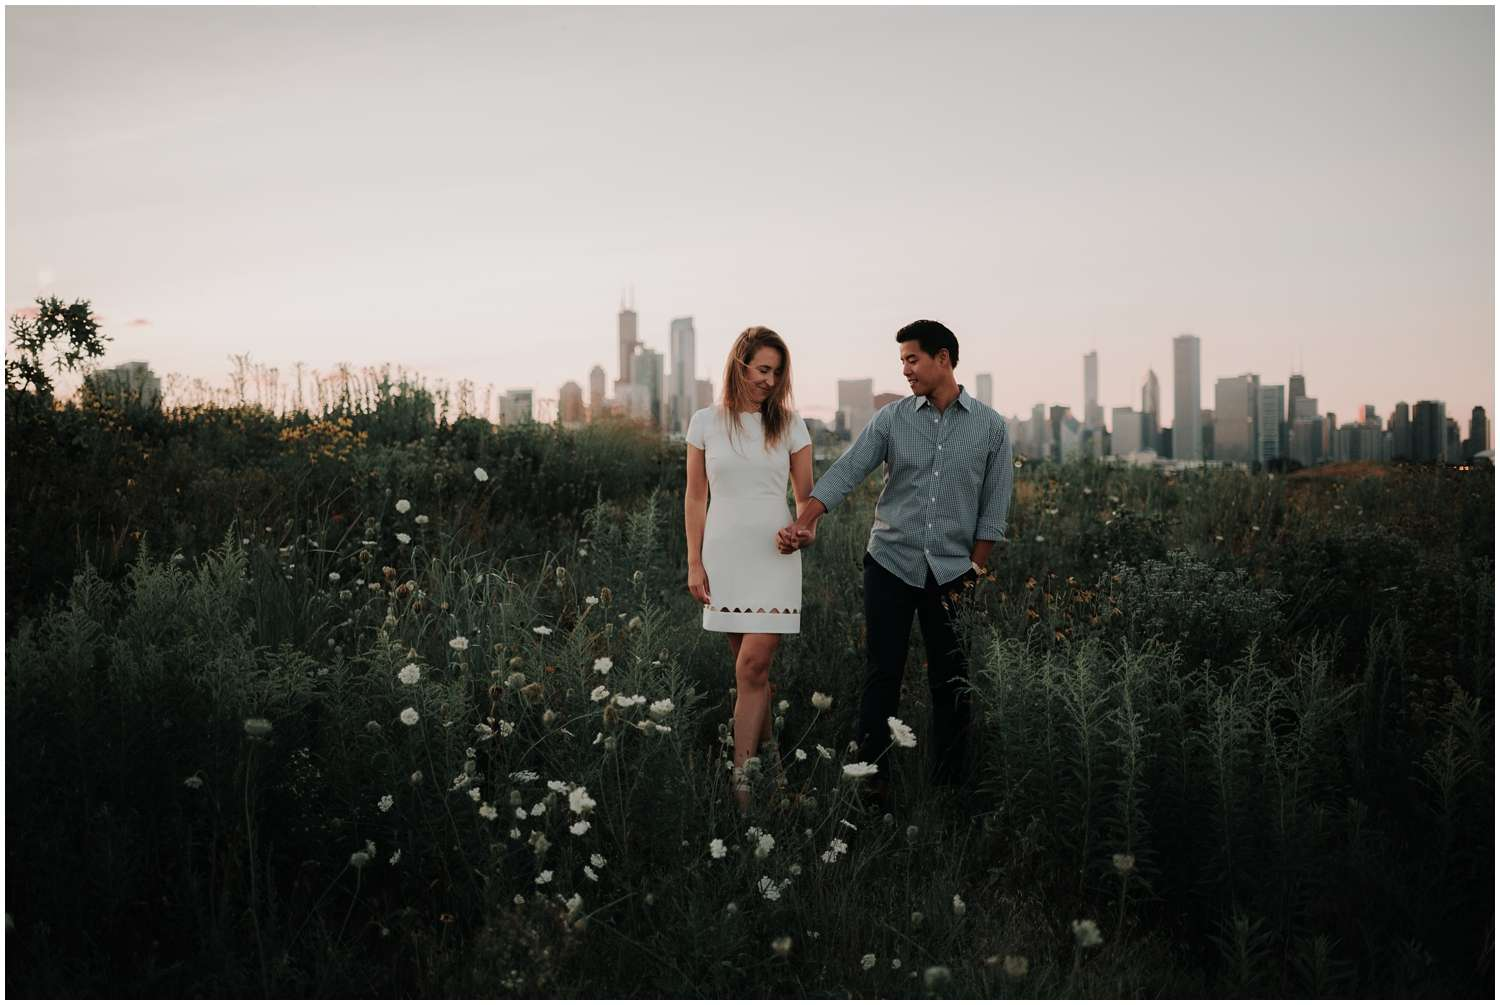 northerly island, chicago, skyline, lake, lake michigan, adventure, sunset, twilight, nighttime, wildflowers, hills, moody, lifestyle, adventure, exploring, explore